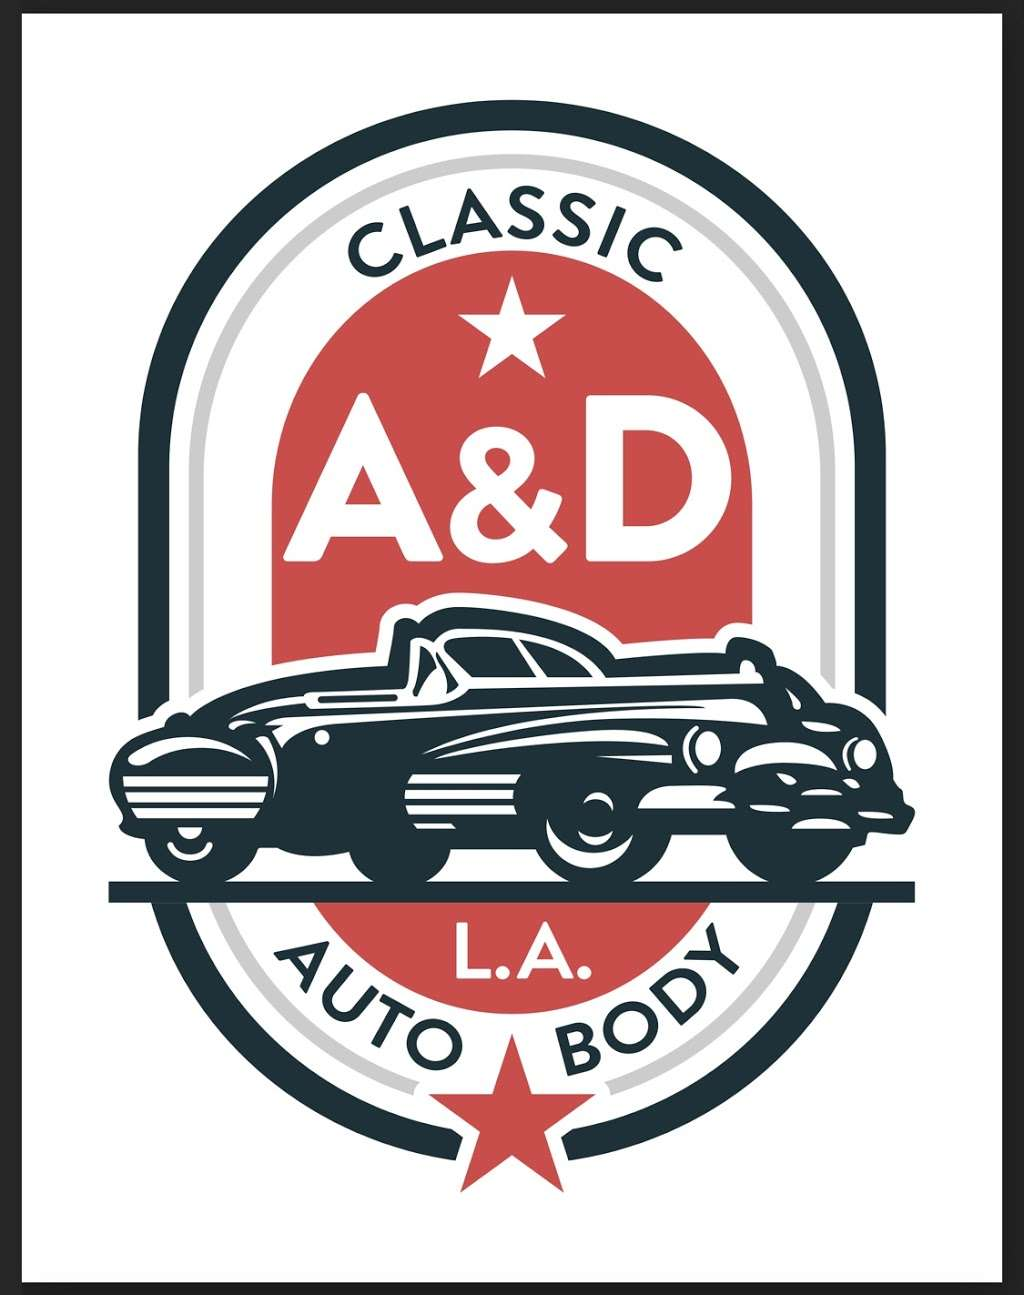 Classic A & D Auto Body - car repair  | Photo 2 of 2 | Address: 15520 Vermont Ave, Paramount, CA 90723, USA | Phone: (562) 633-6247